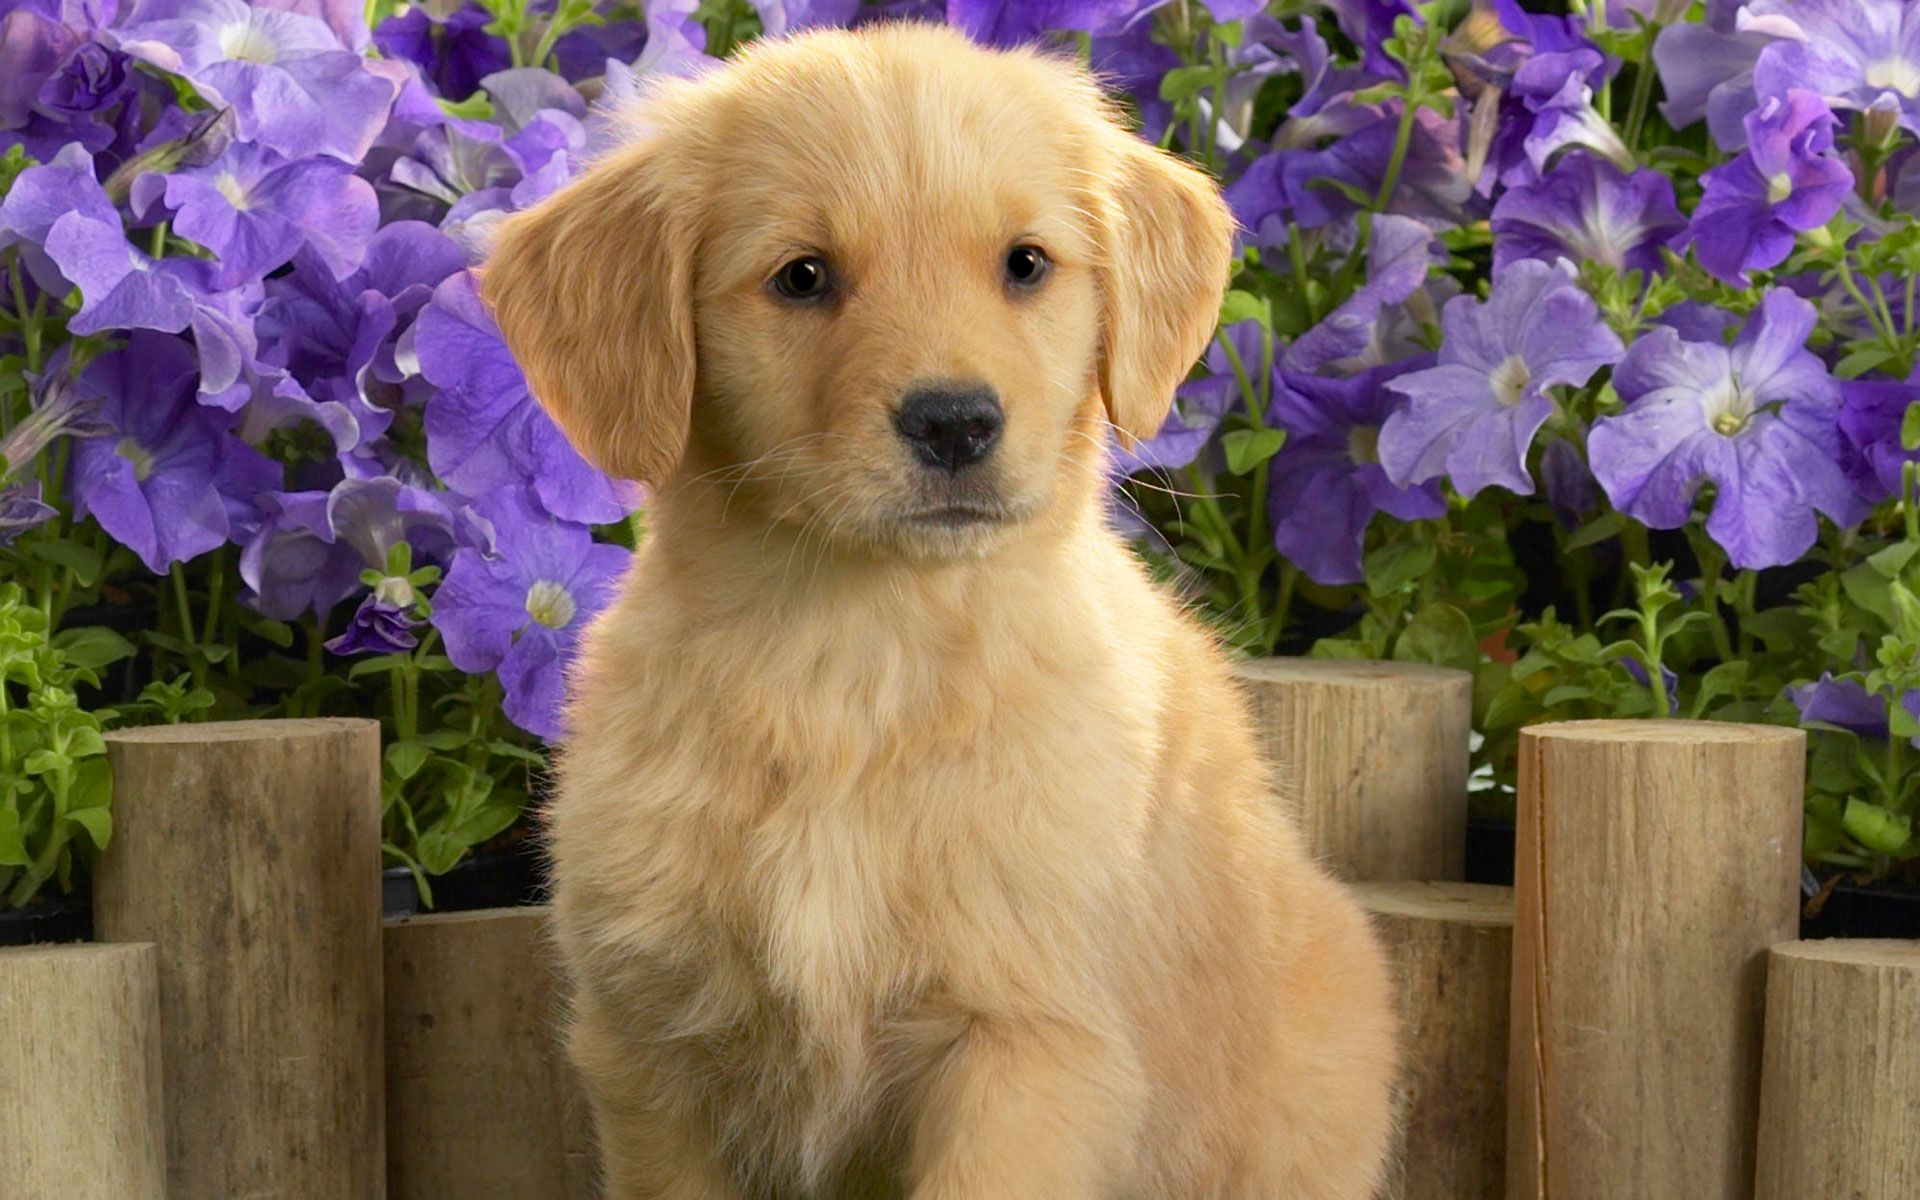 Cutest Puppies Altogether To Make You Say Aww 24 Jpg 1920 1200 Golden Labrador Puppies Puppy Wallpaper Cute Dog Wallpaper